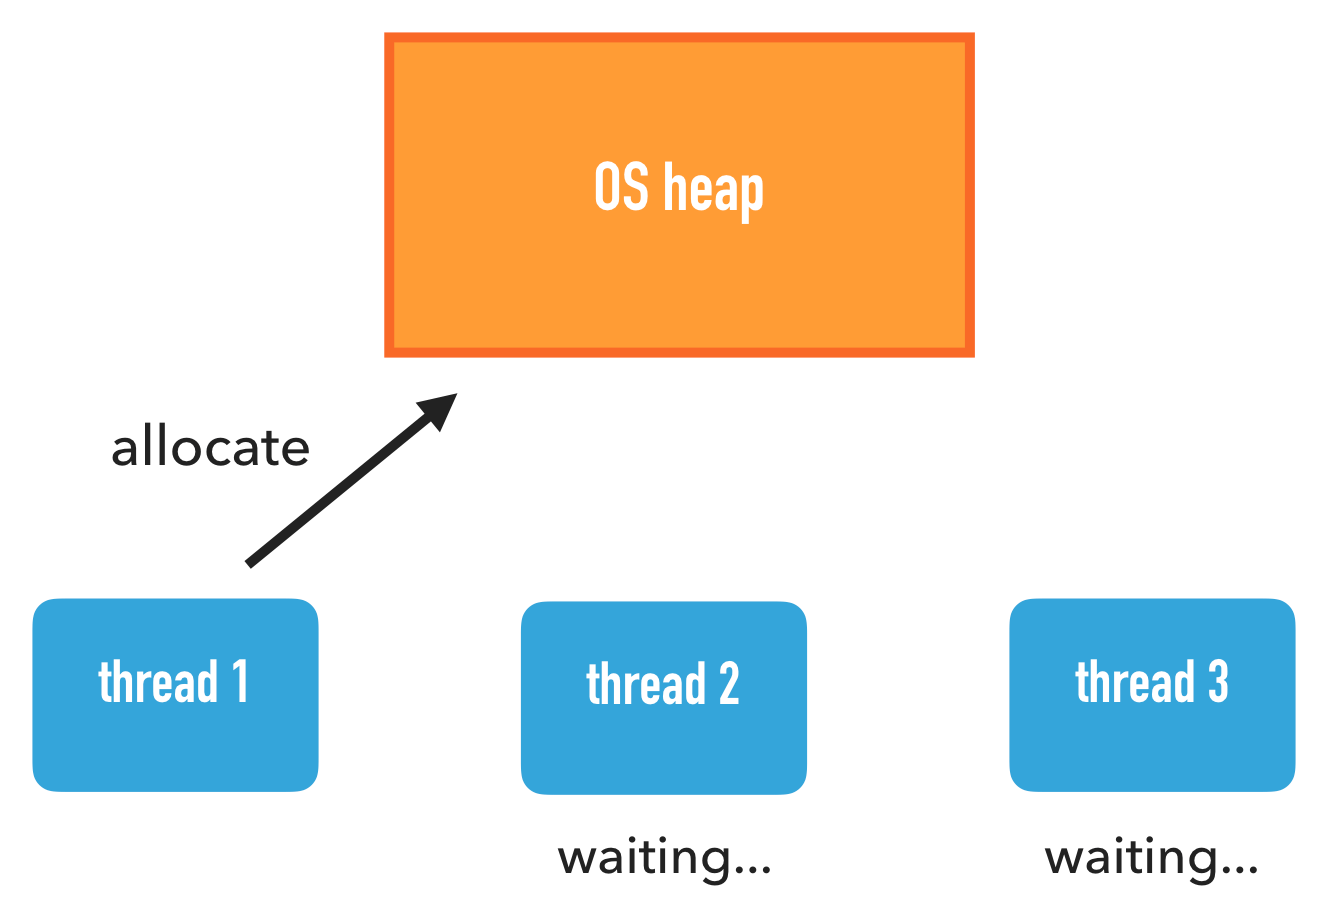 Os heap contention